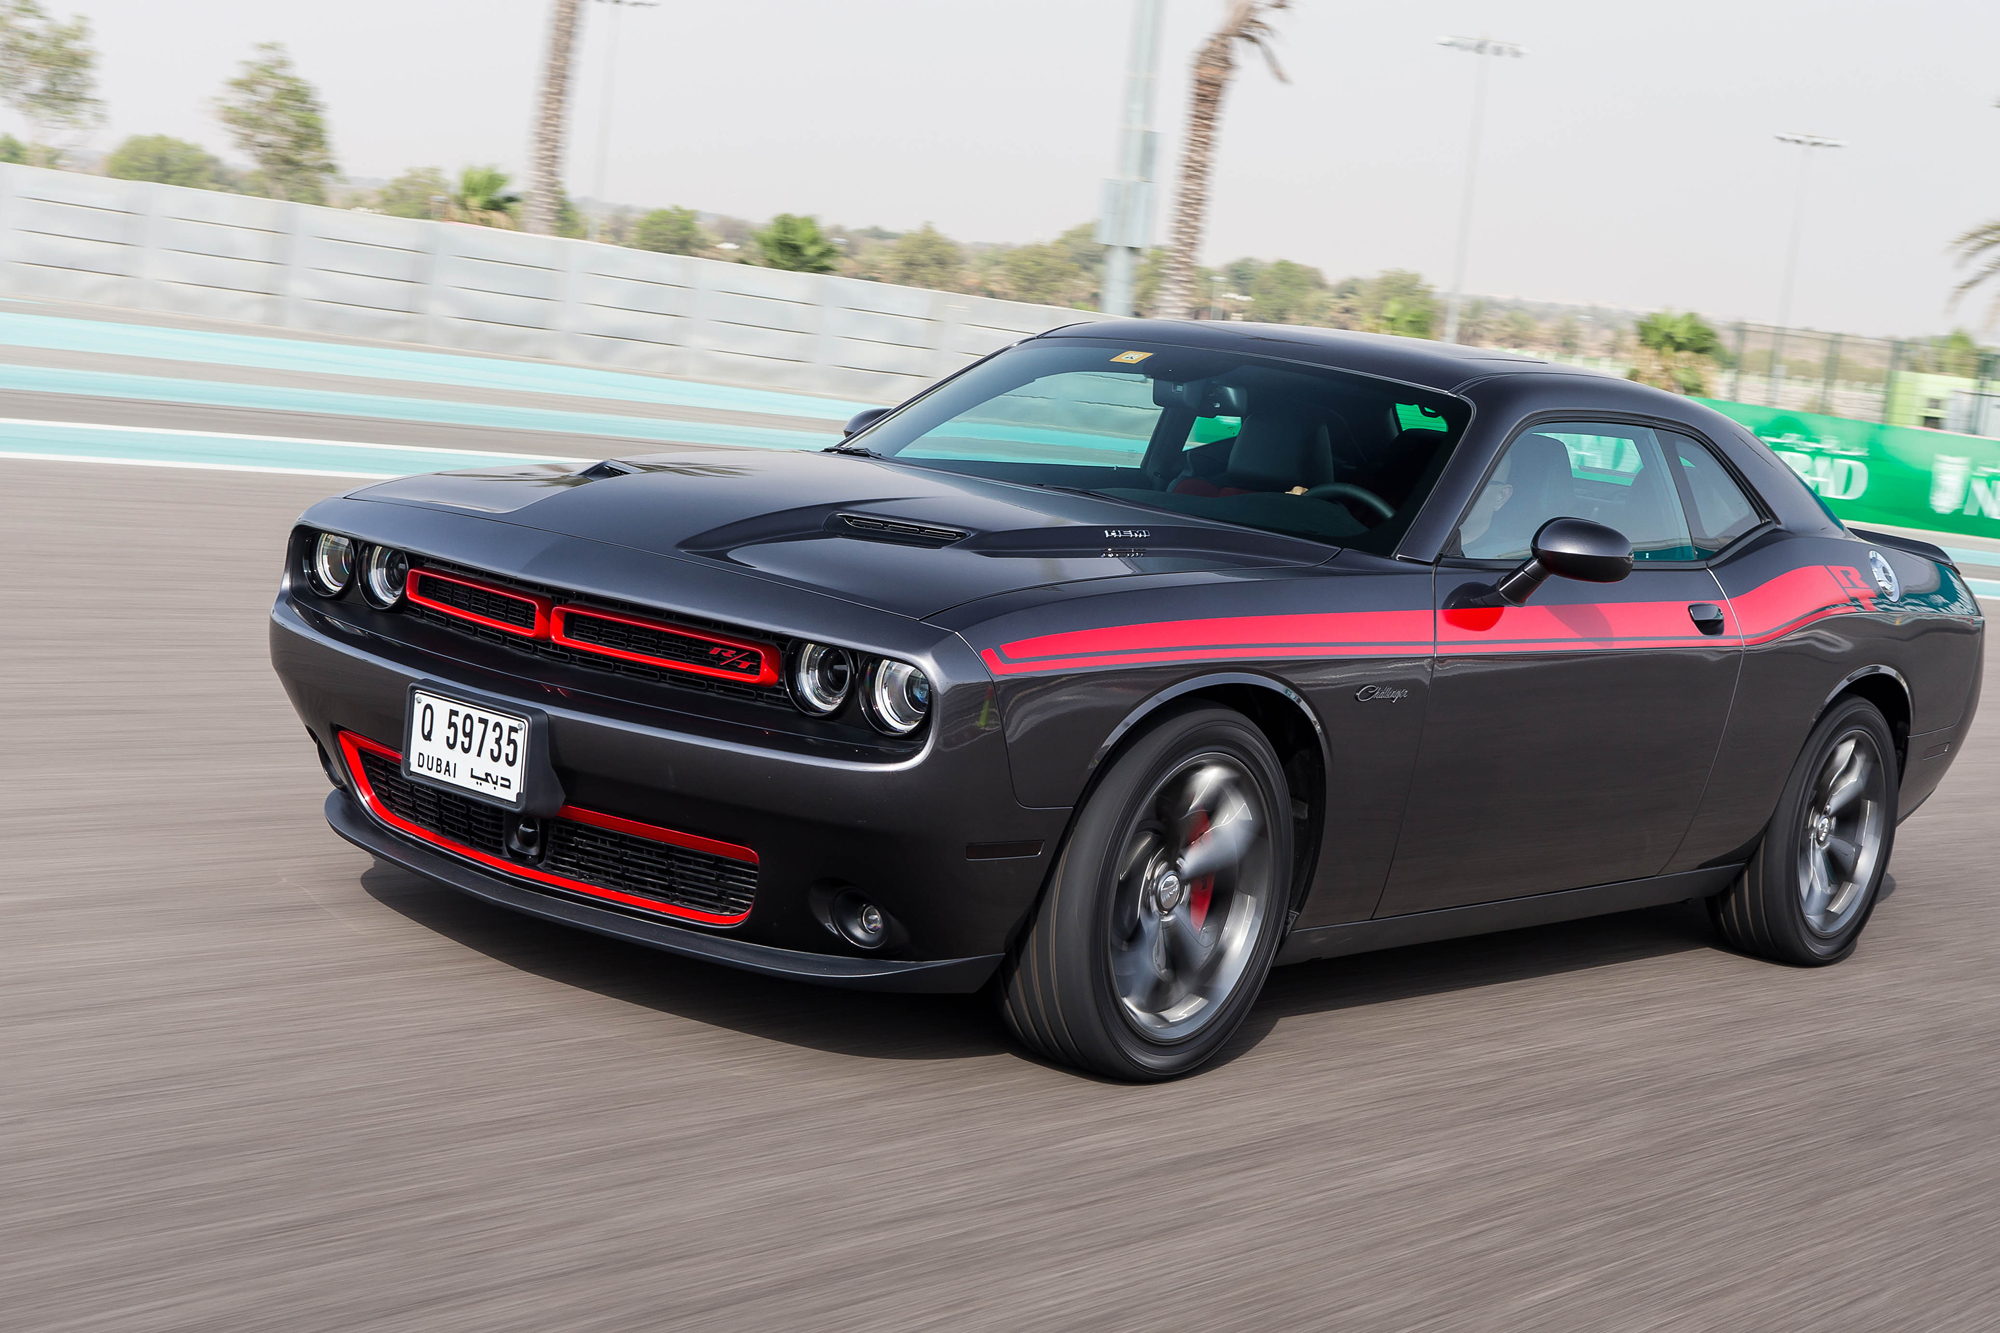 2015 dodge challenger charger hellcat driven at yas videomotoring middle east car news. Black Bedroom Furniture Sets. Home Design Ideas